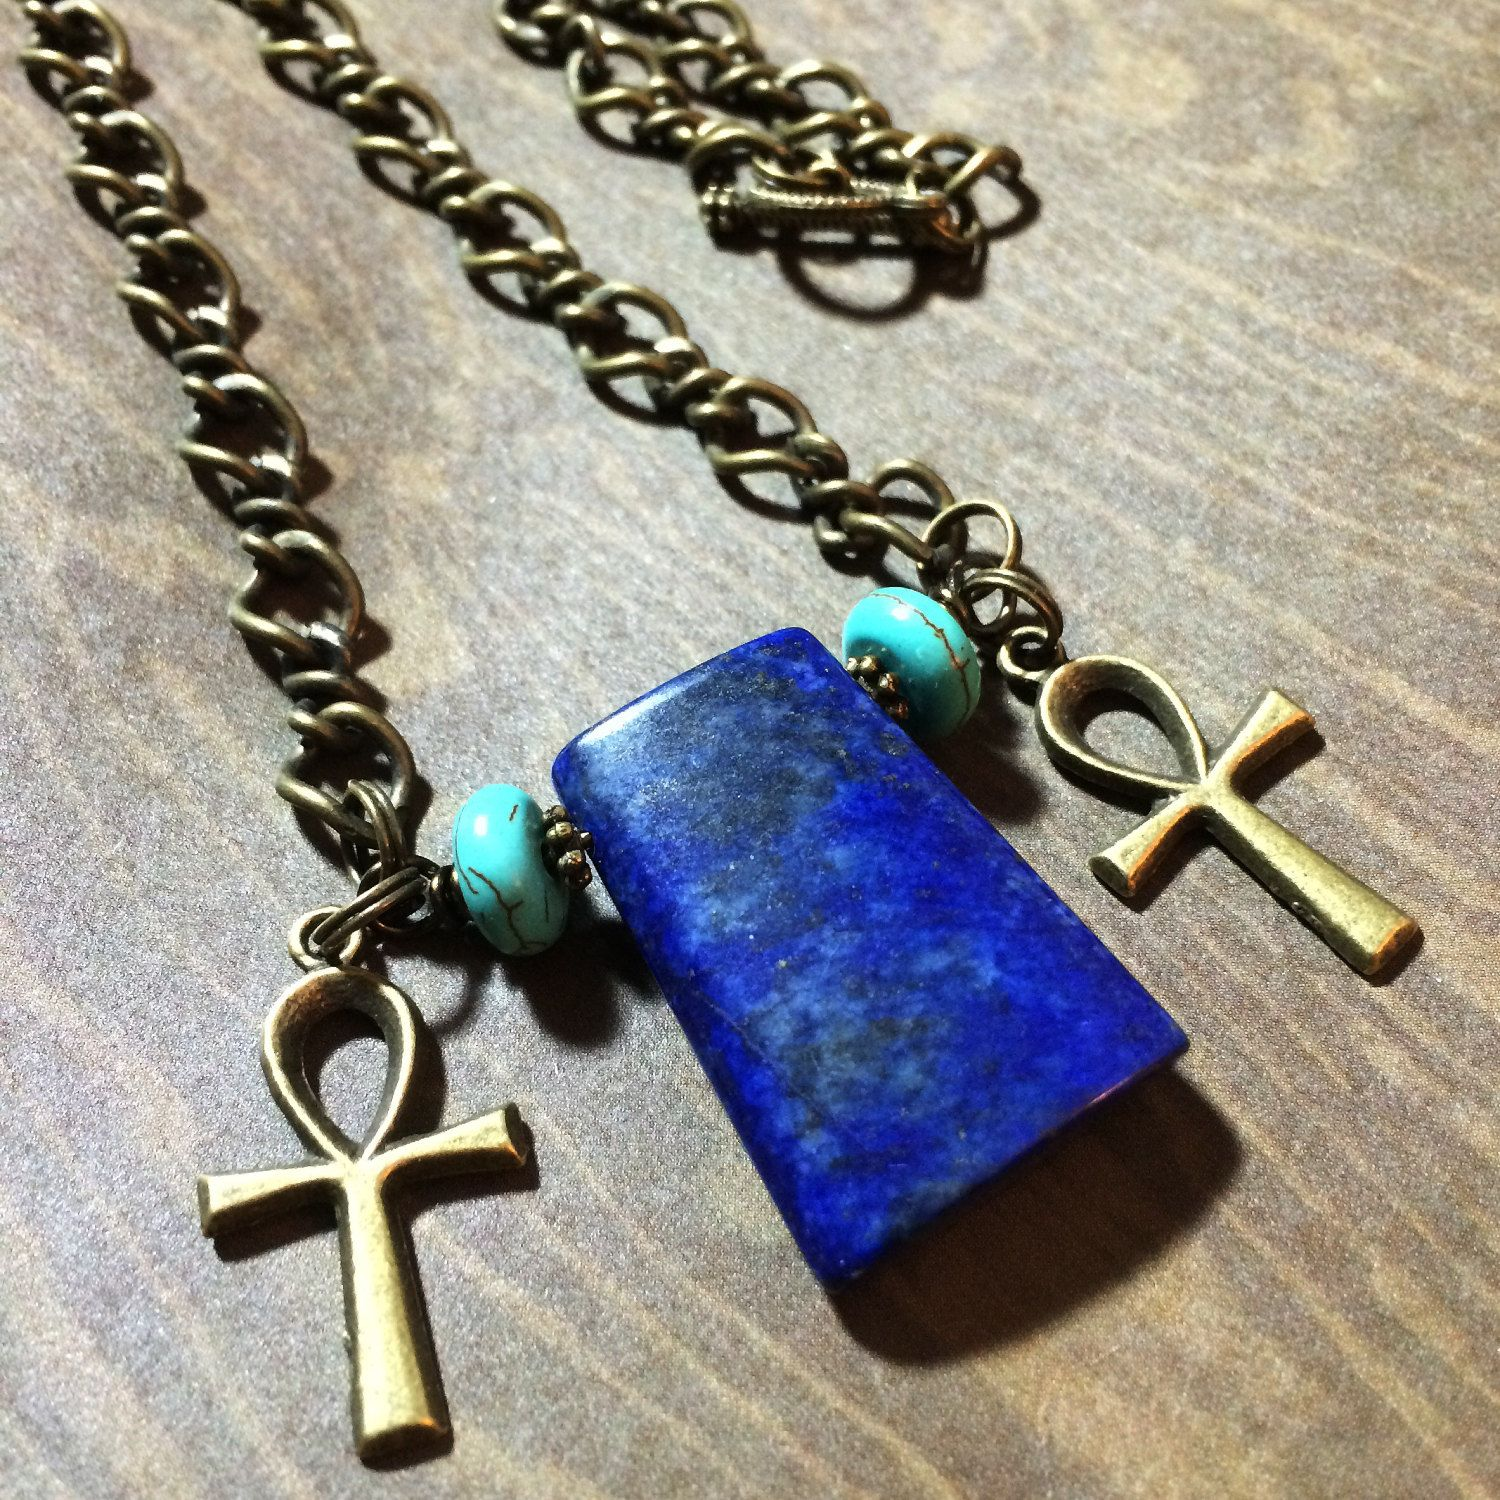 Lapis lazuli egyptian ankh necklace egyptian cross pendant inspired by ancient egyptian symbolism this antique gold chain necklace features an eye catching 1 buycottarizona Image collections